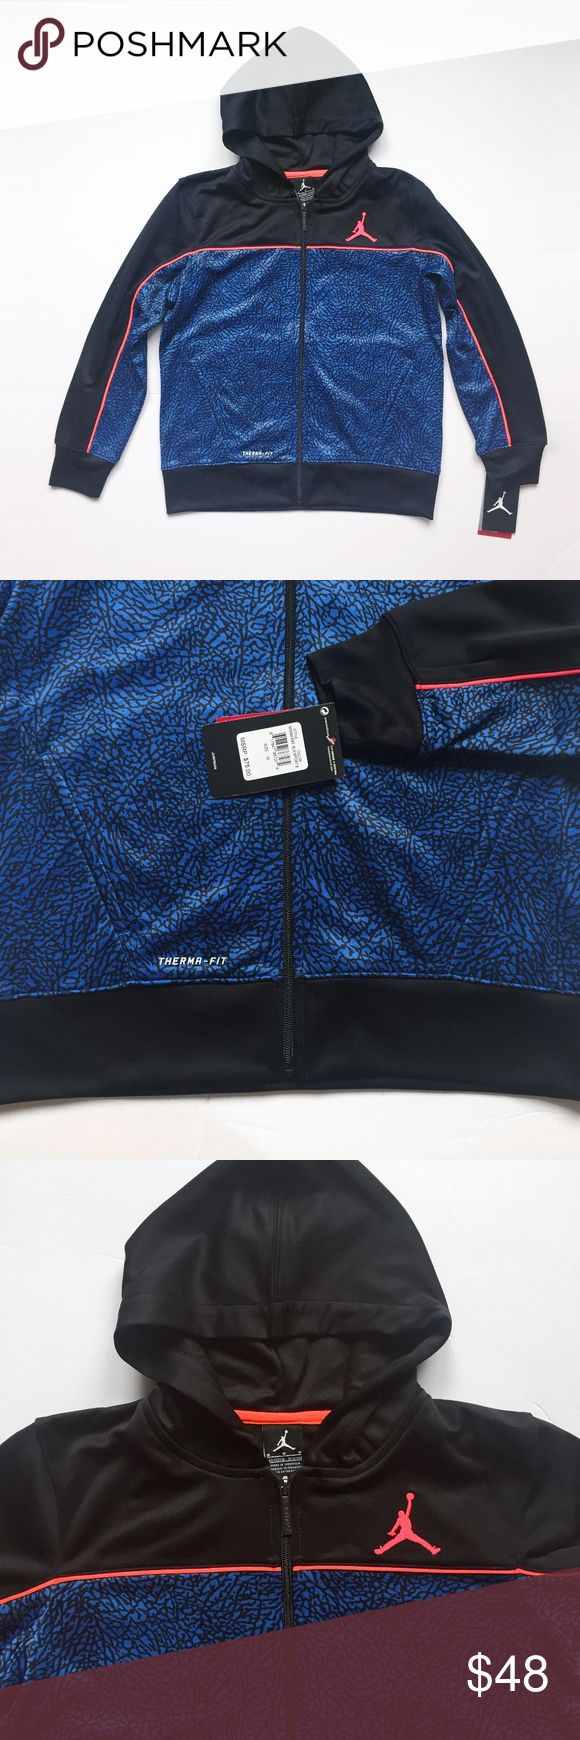 """NIKE JORDAN JUMPMAN thermafit hooded track jacket NIKE   retro  classic. jumpman. pockets. thermafit, """" helps keep you warm and insulated """". fleece lining,  100 poly.   laid flat, seam - seam: chest: 18.5"""" shoulders: 15"""" shoulder to hem: 22"""" shoulder to cuff: 21""""   boys M, fits 10 - 12 years new with tags, pet/smoke free  air vintage sweatshirt basketball running athletic trainer training yeezy color way shoes matching sweater sneaker head flight club shoes shoe oversized slouchy sporty…"""